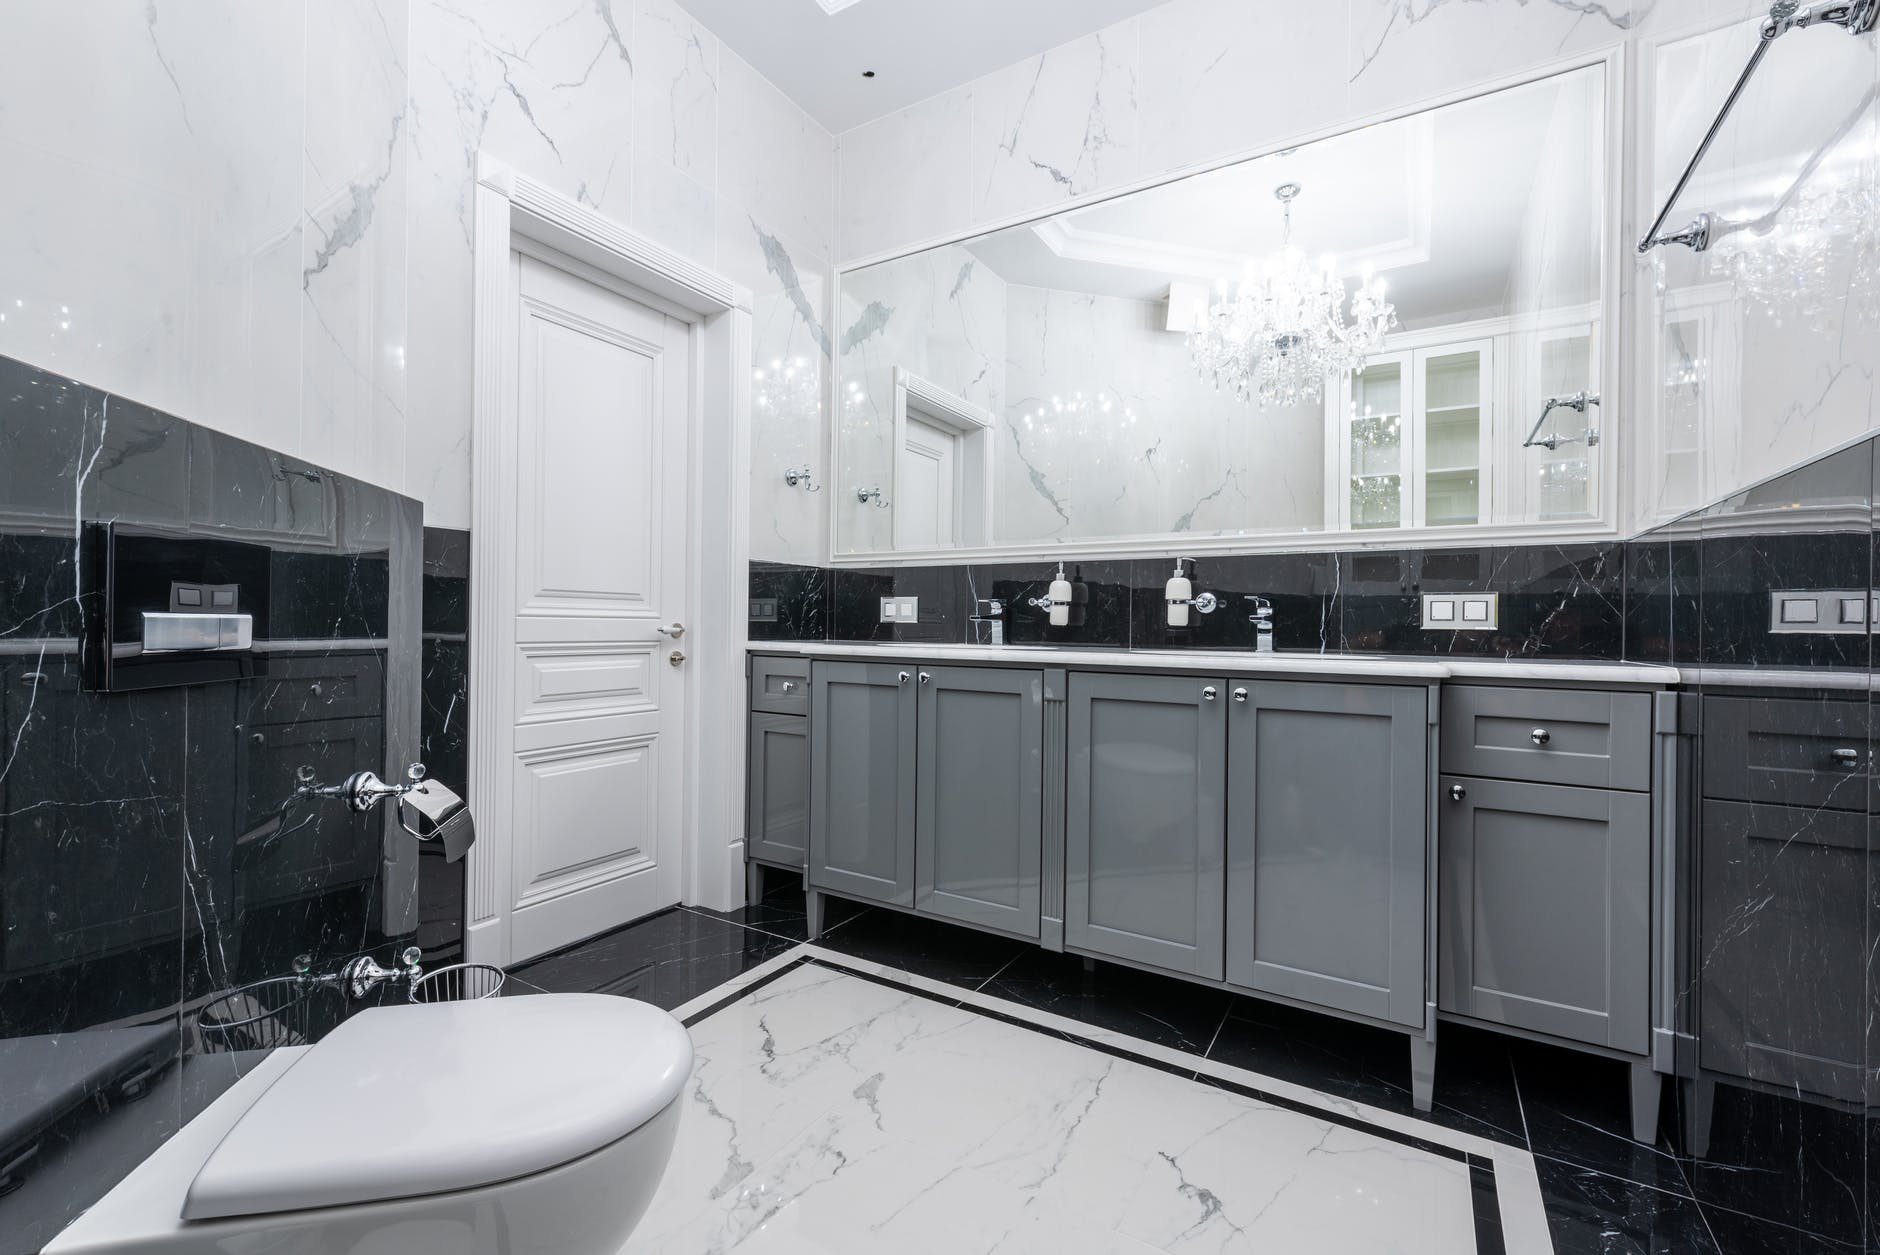 prestige bathroom with large mirror and glowing chandelier